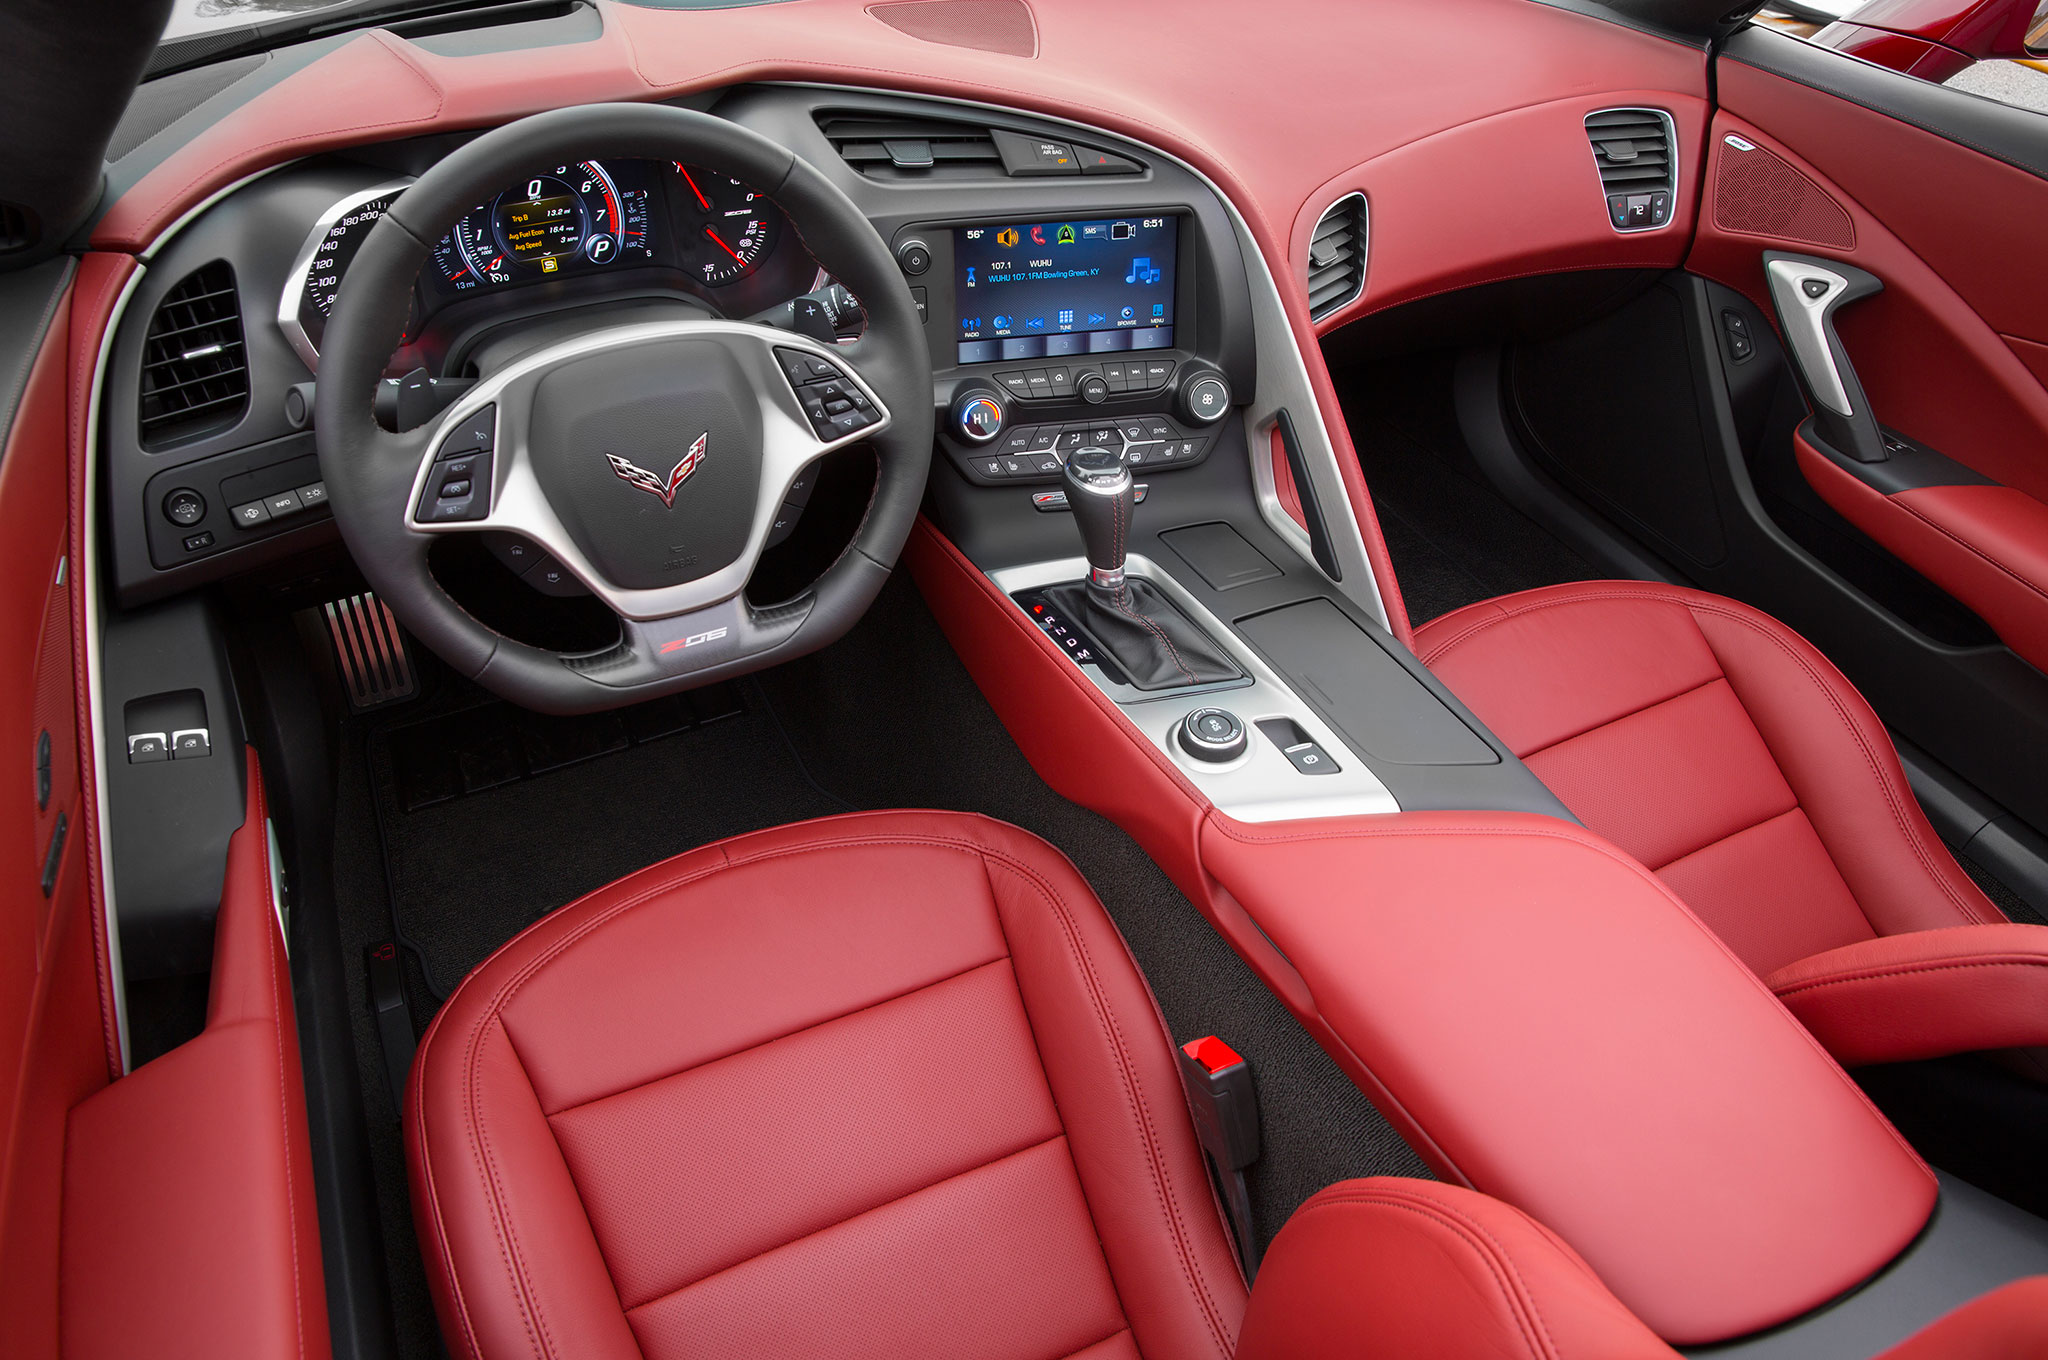 2016 Chevrolet Corvette Z06 E Red Design Package Interior 17 97